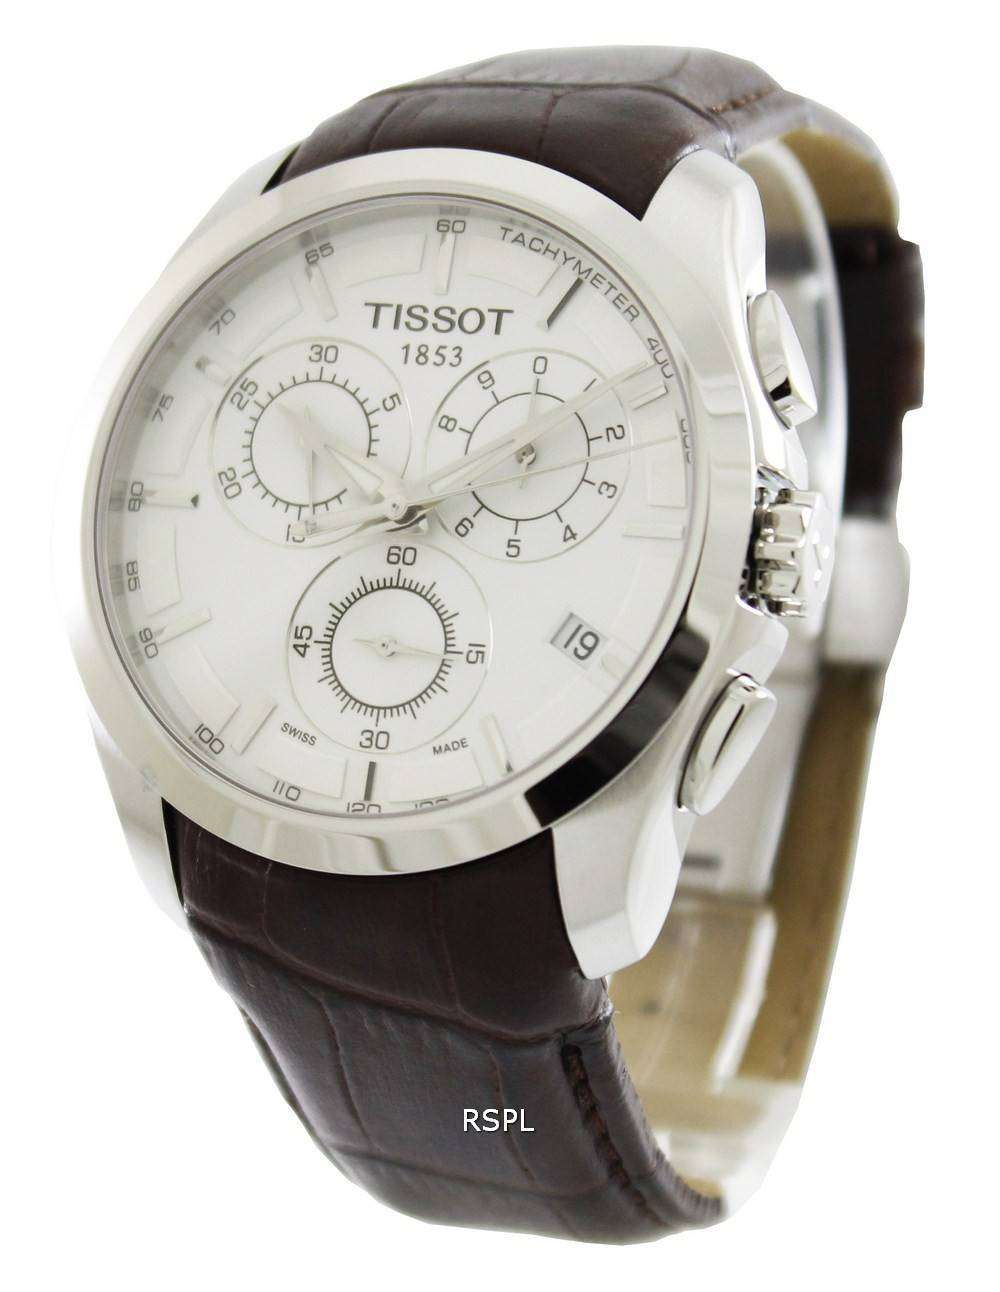 tissot couturier quartz chronograph review